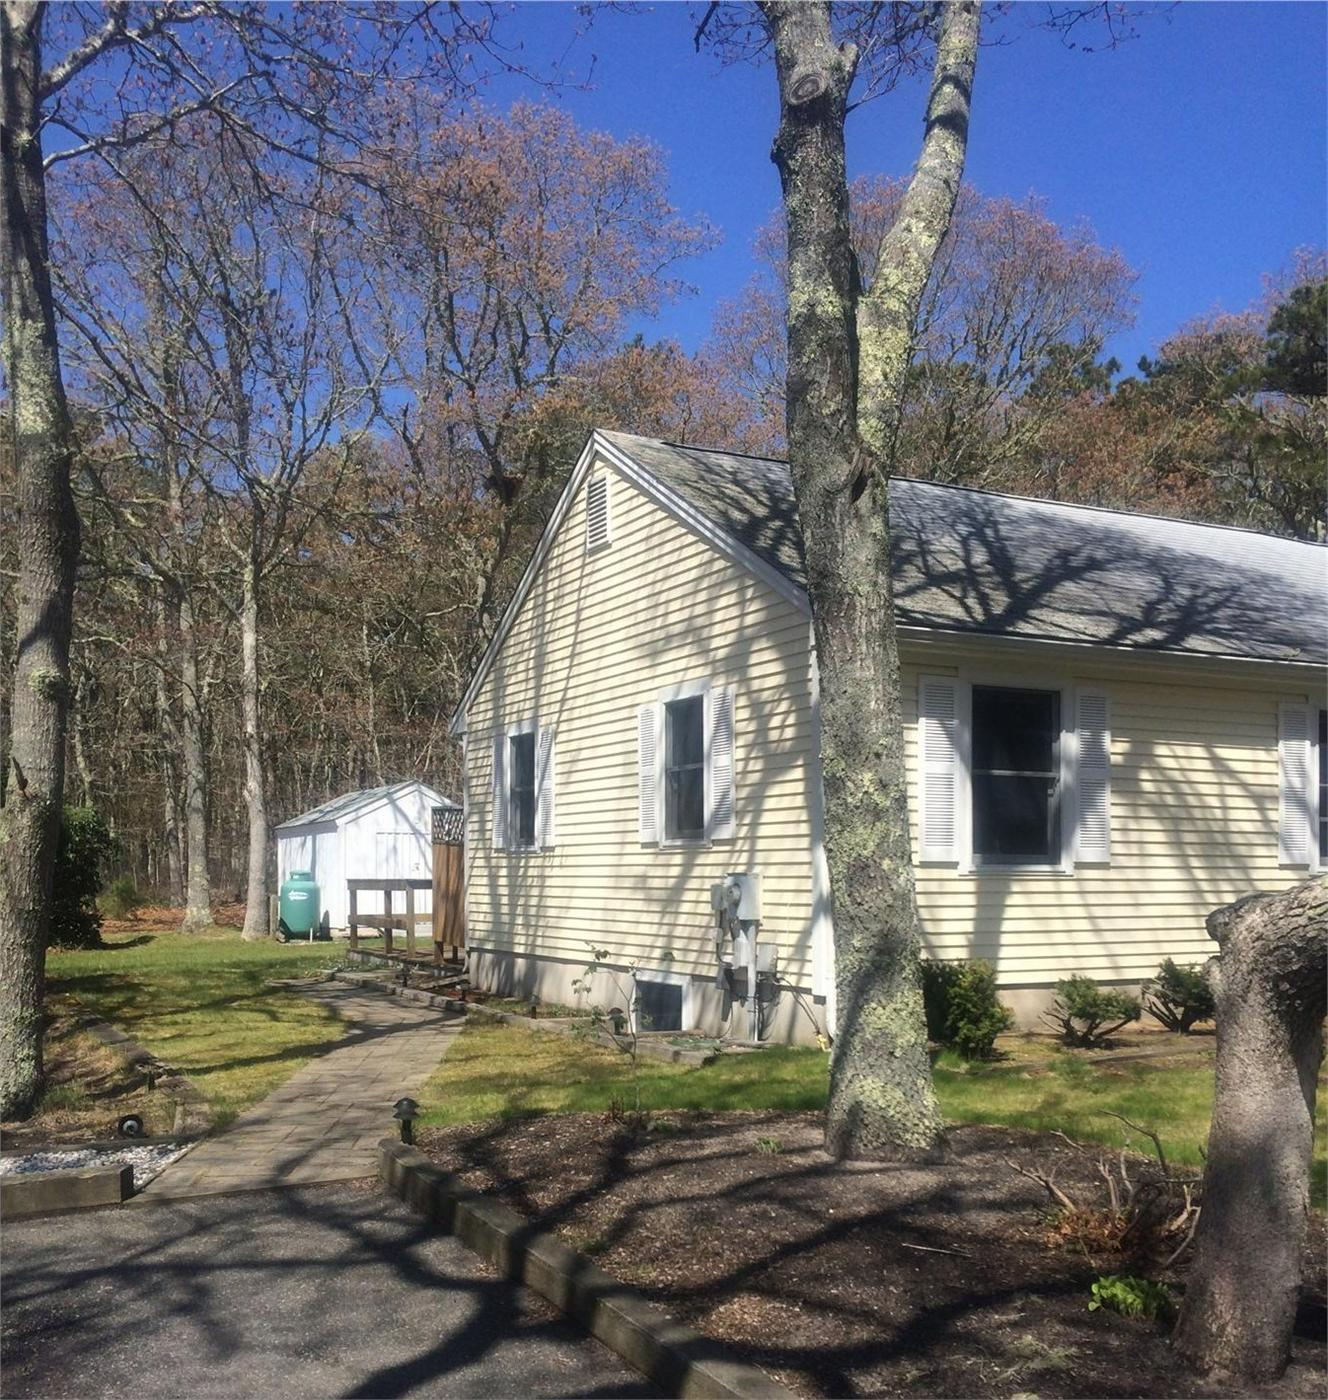 Harwich Vacation Rental Home In Cape Cod MA 02645